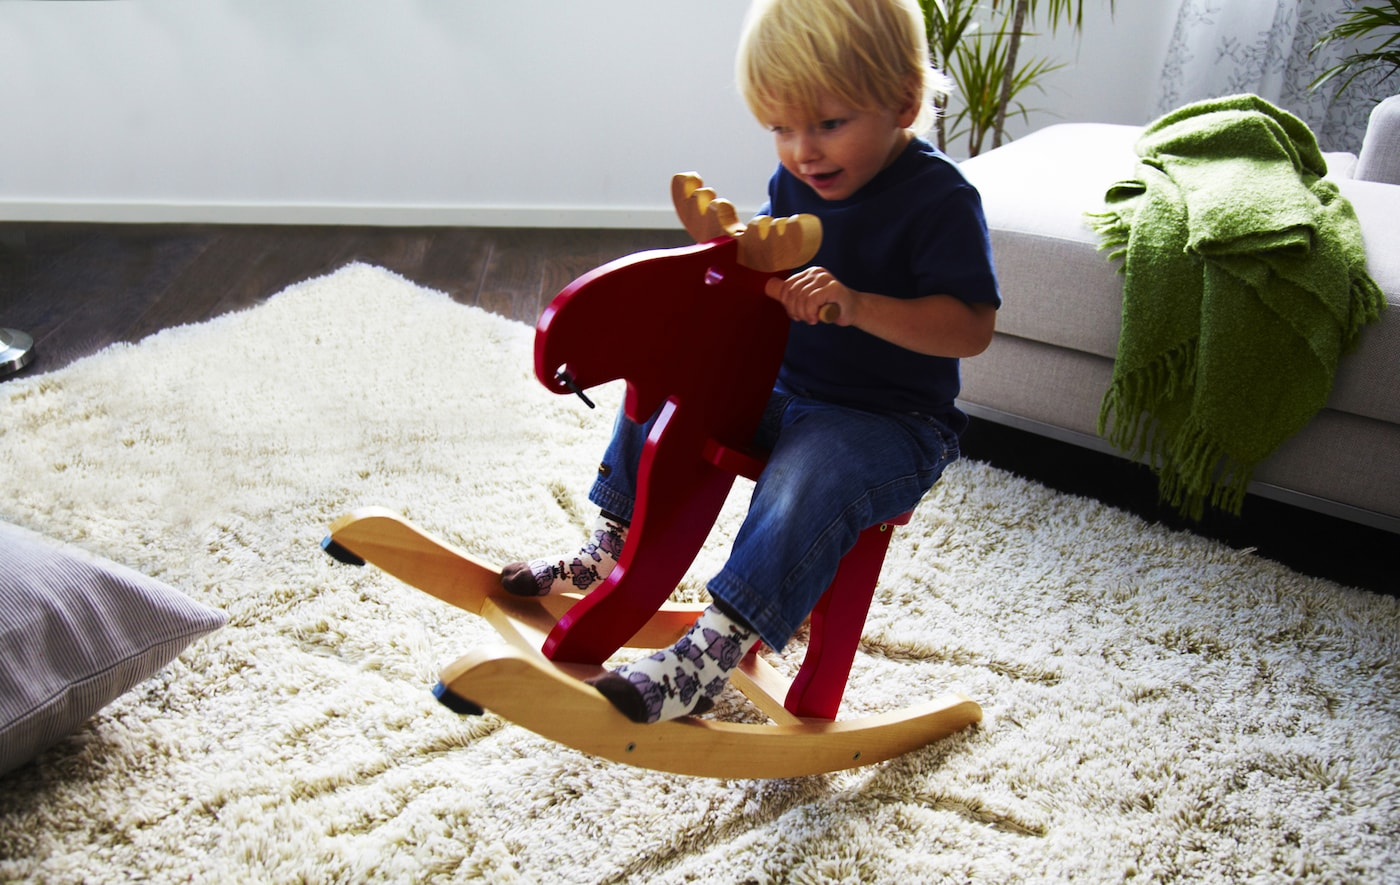 A small child playing on a red moose-shaped rocking horse in a living room with neutral decor.